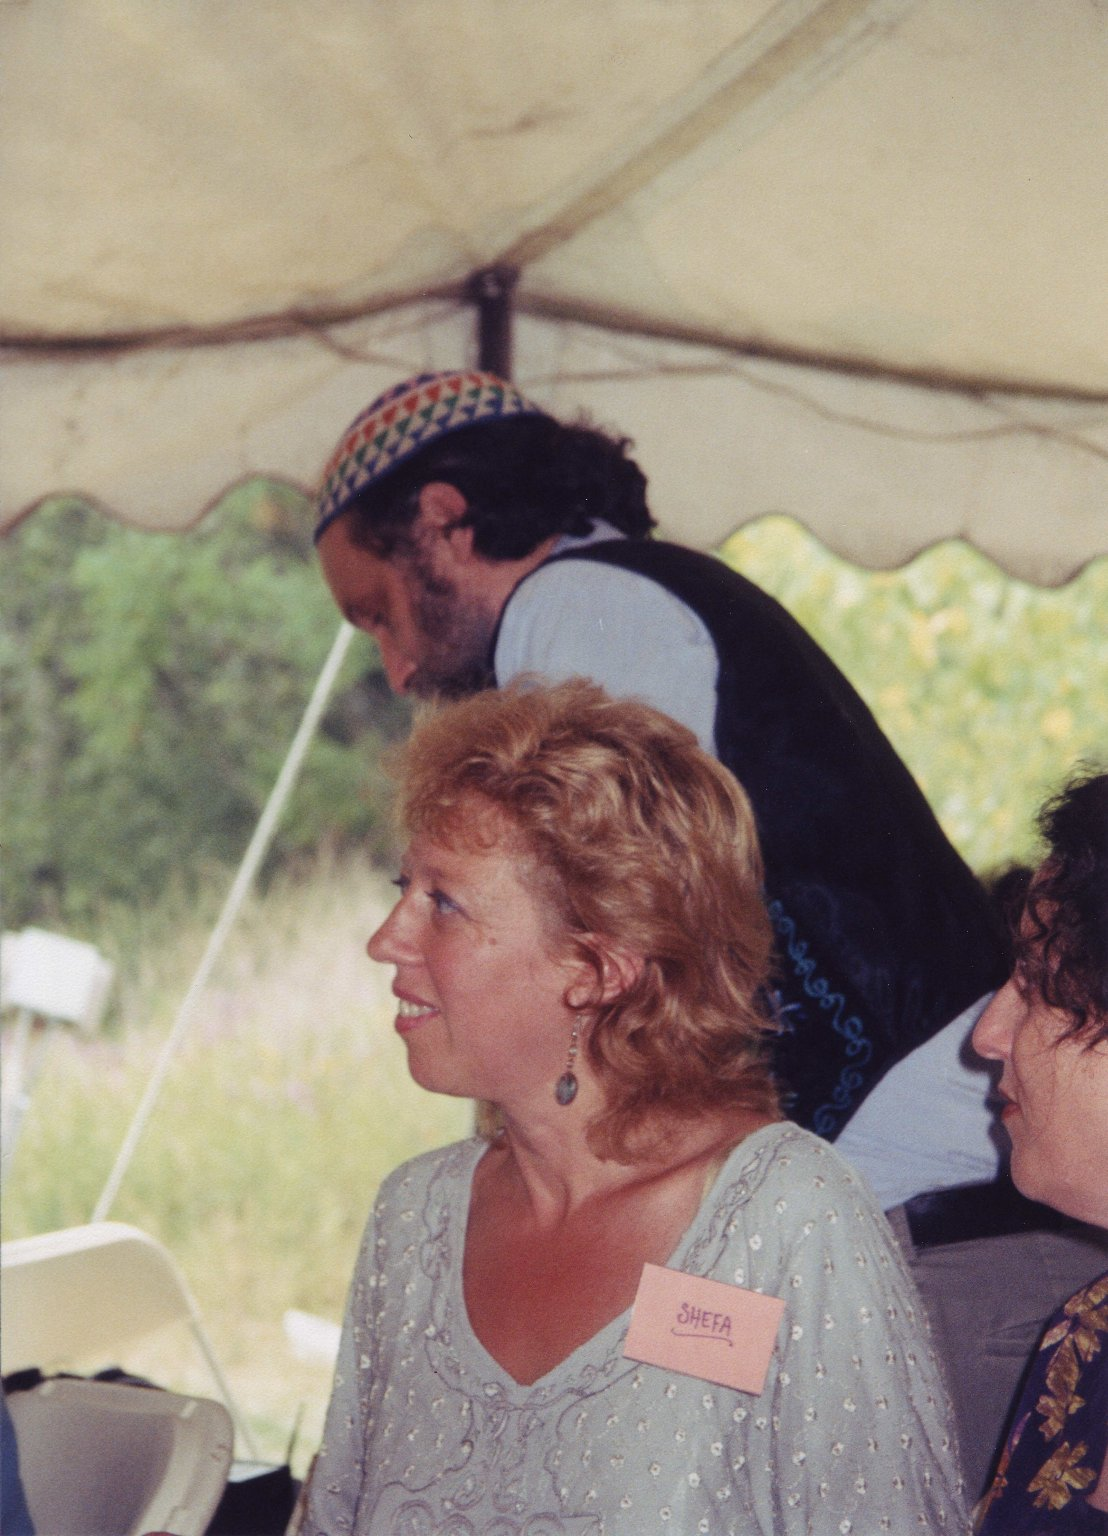 Candid photo from Rabbi Zalman Schachter-Shalomi's 75th birthday celebration at Elat Chayyim, ca. 1999. Digital photo scanned at 800dpi and cropped to photo area.